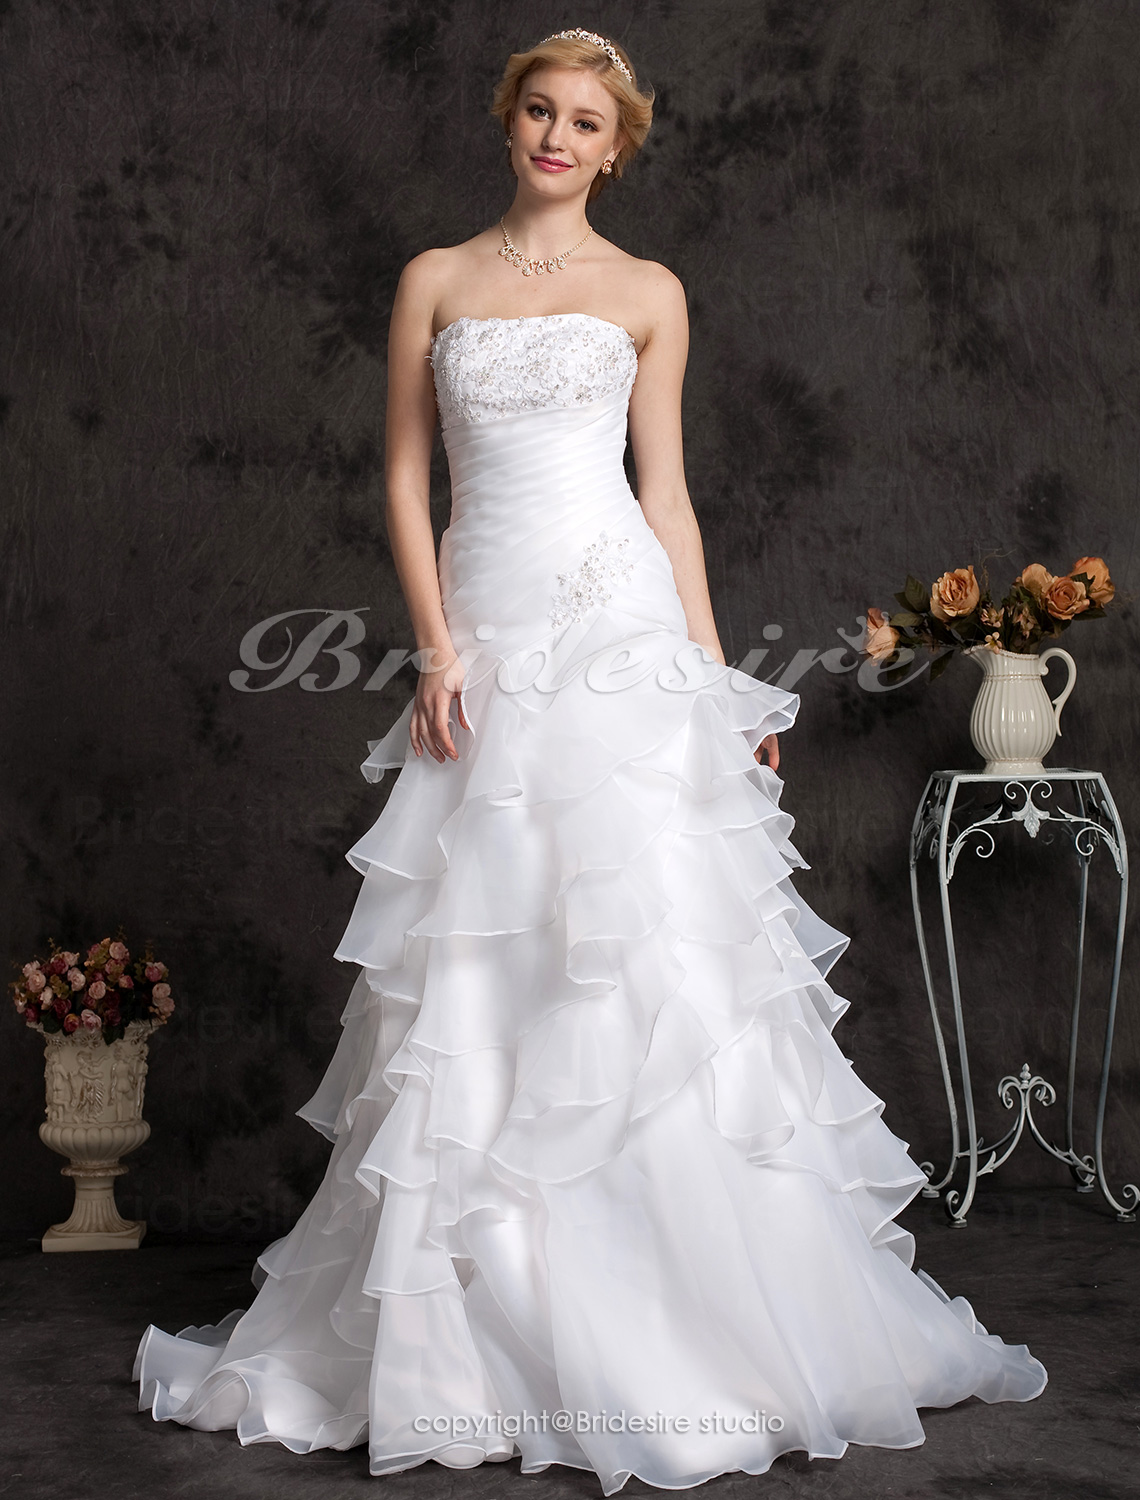 A-line Appliques Strapless Side-Draped Tiered Floor-length Wedding Dress